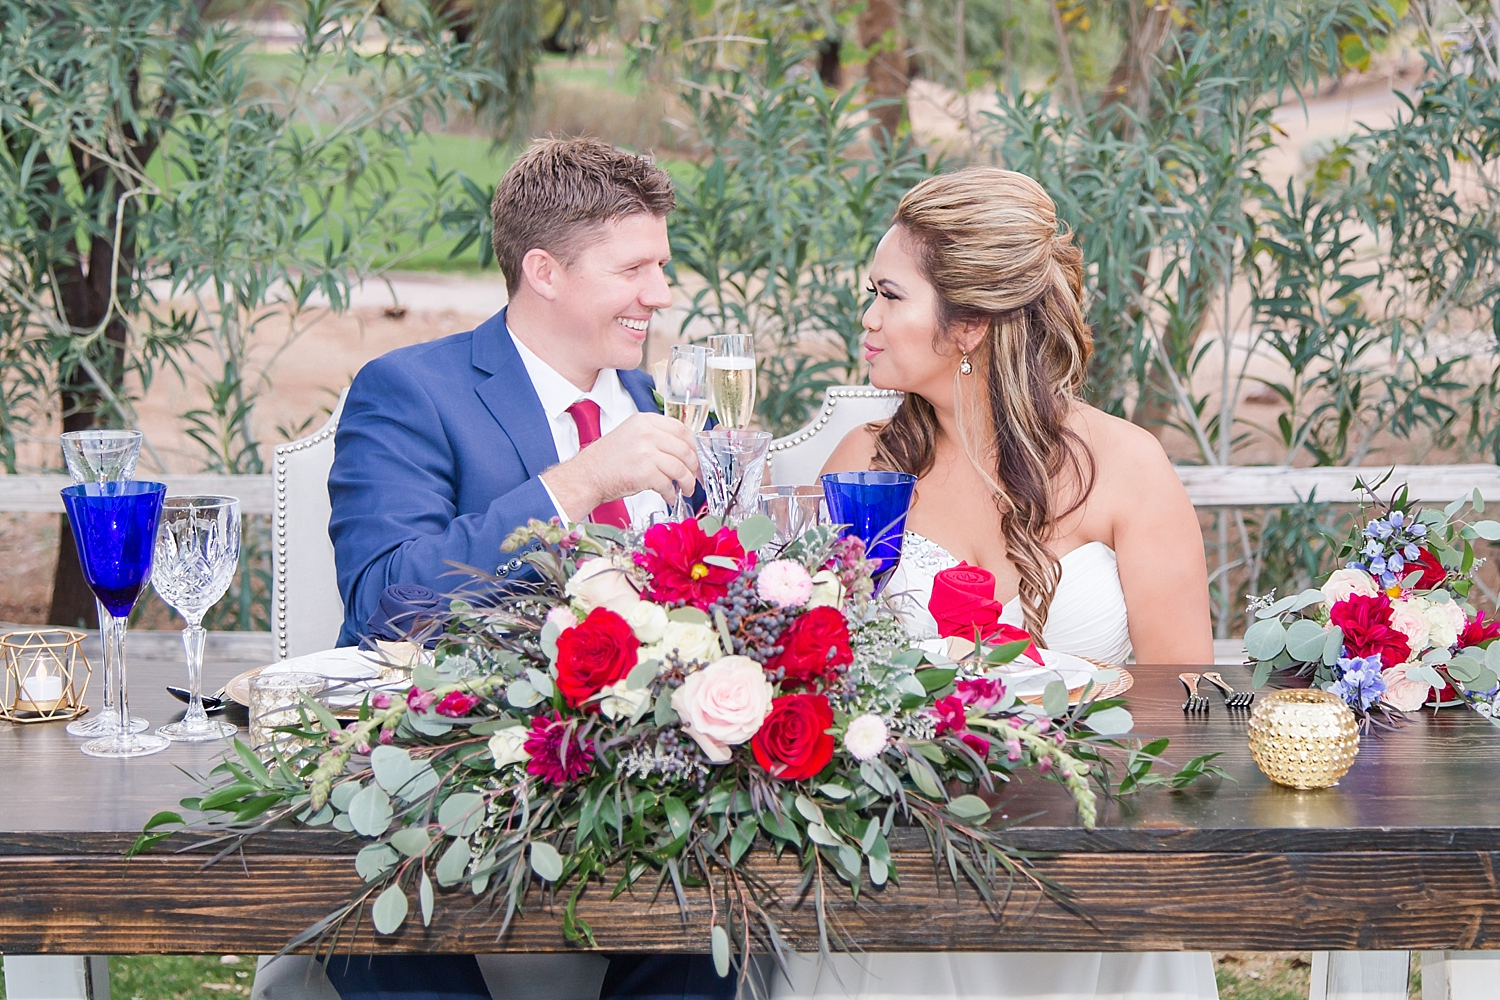 Rustic Elegance inspired wedding at the Legacy Golf Resort in Phoenix, Arizona. Event coordinated by Jade Min Photography.